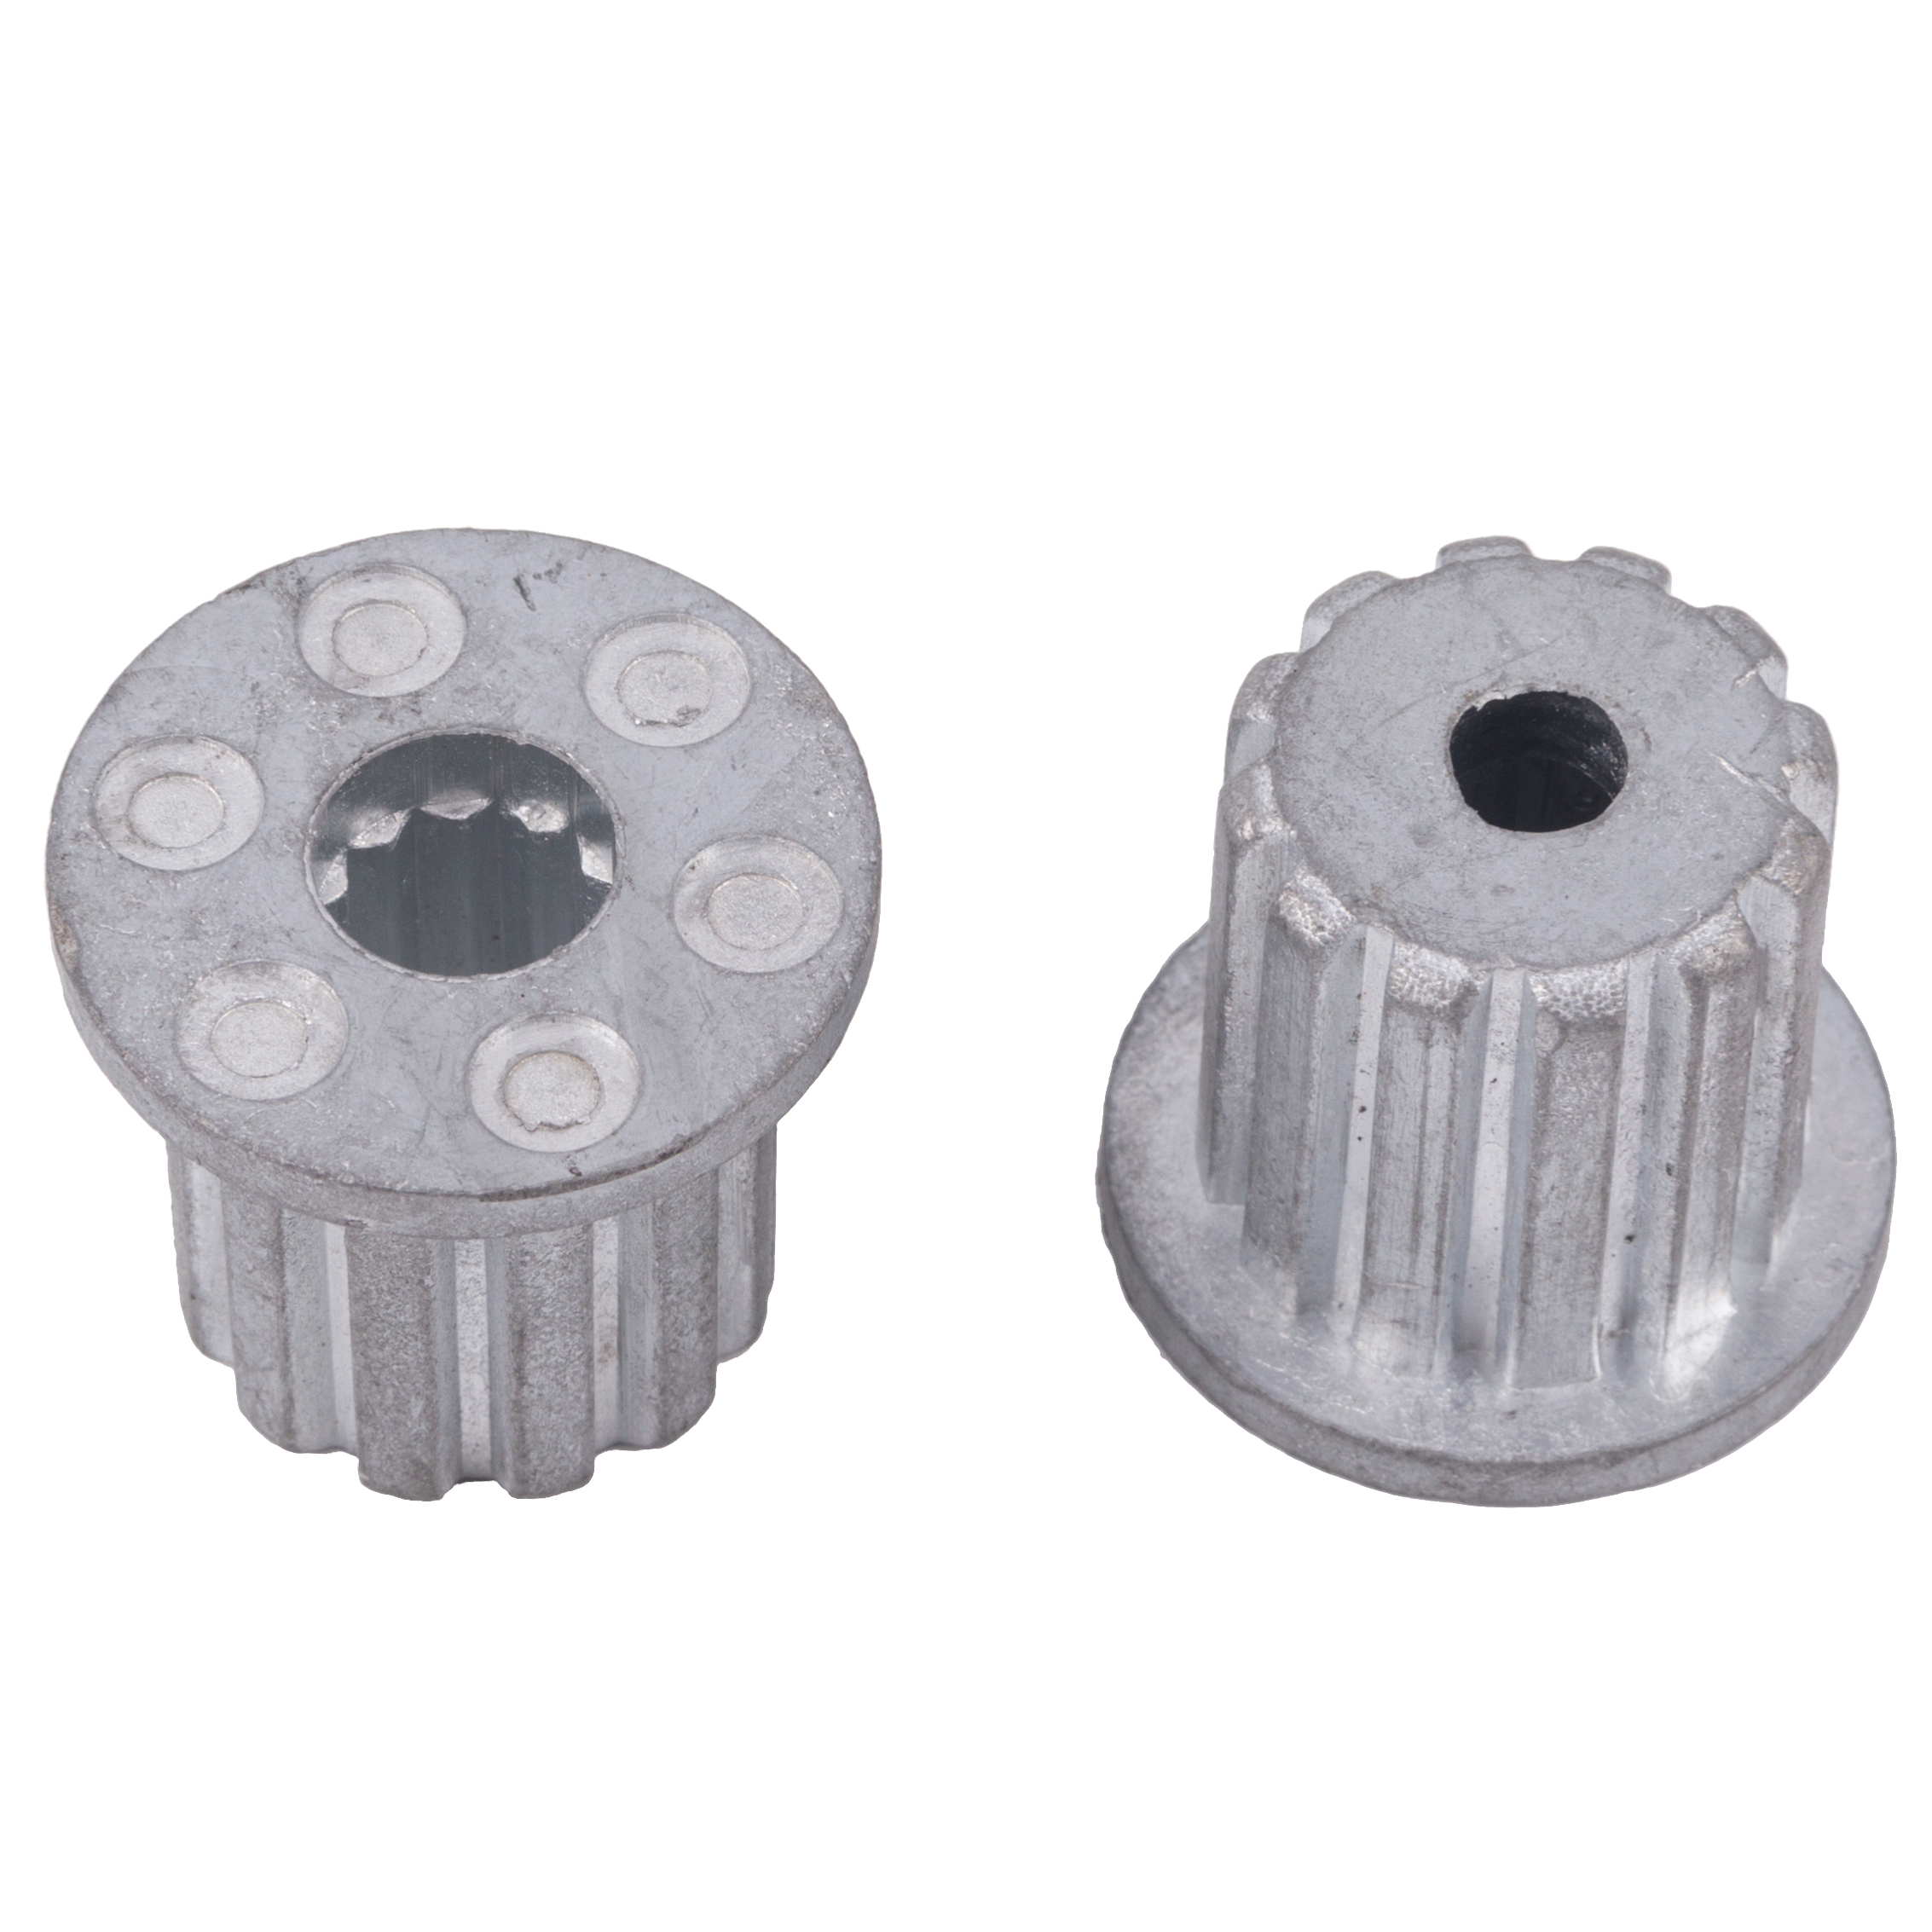 General Washing Machine Pulsator Core Center 11 Teeth Big Size Gear Leaf Water Metal Axis Spare Parts